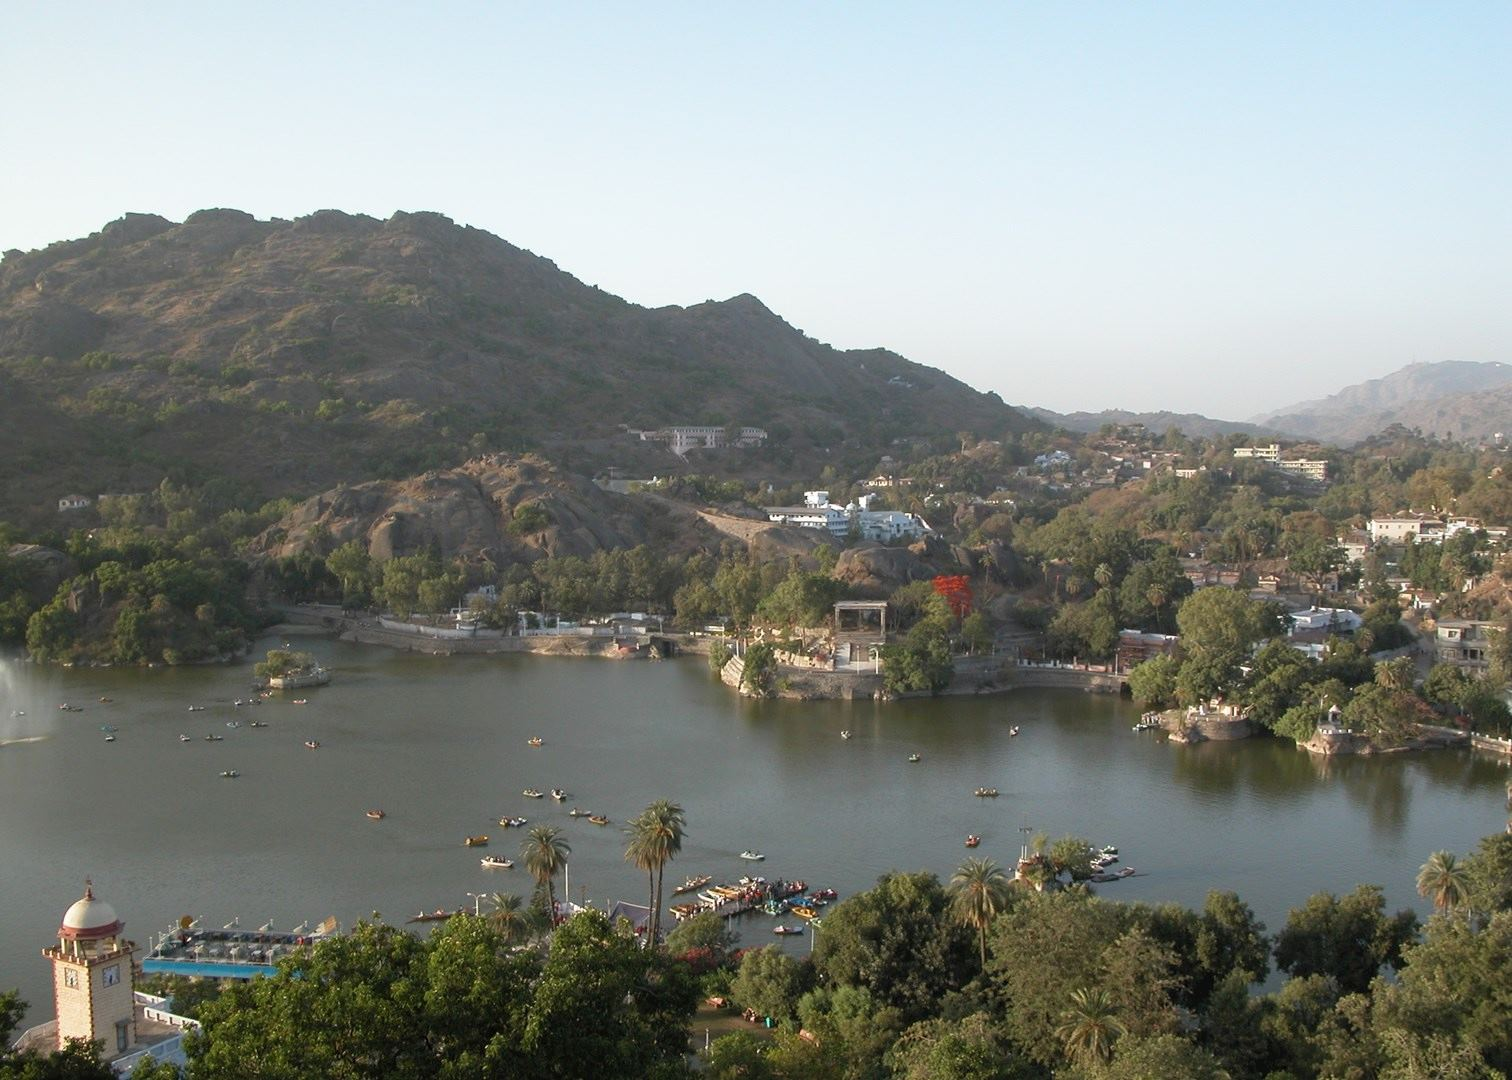 Mount Abu India  city photos : photos of mount abu delwara jain temples mount abu mount abu india